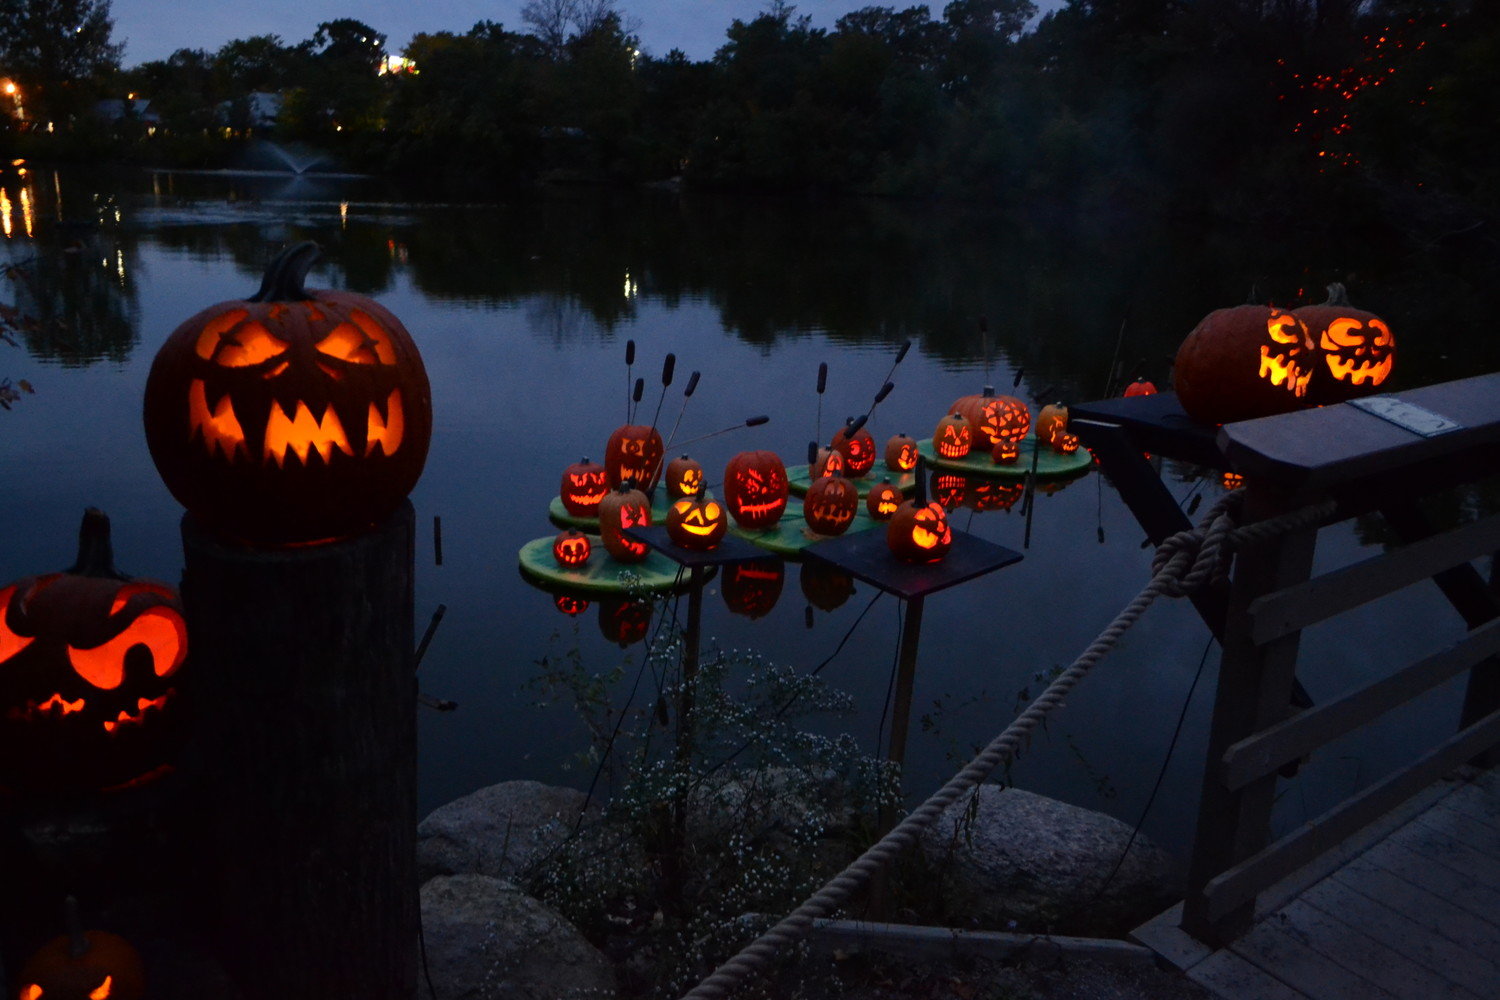 a 'spooktacular' spectacle | warwick beacon